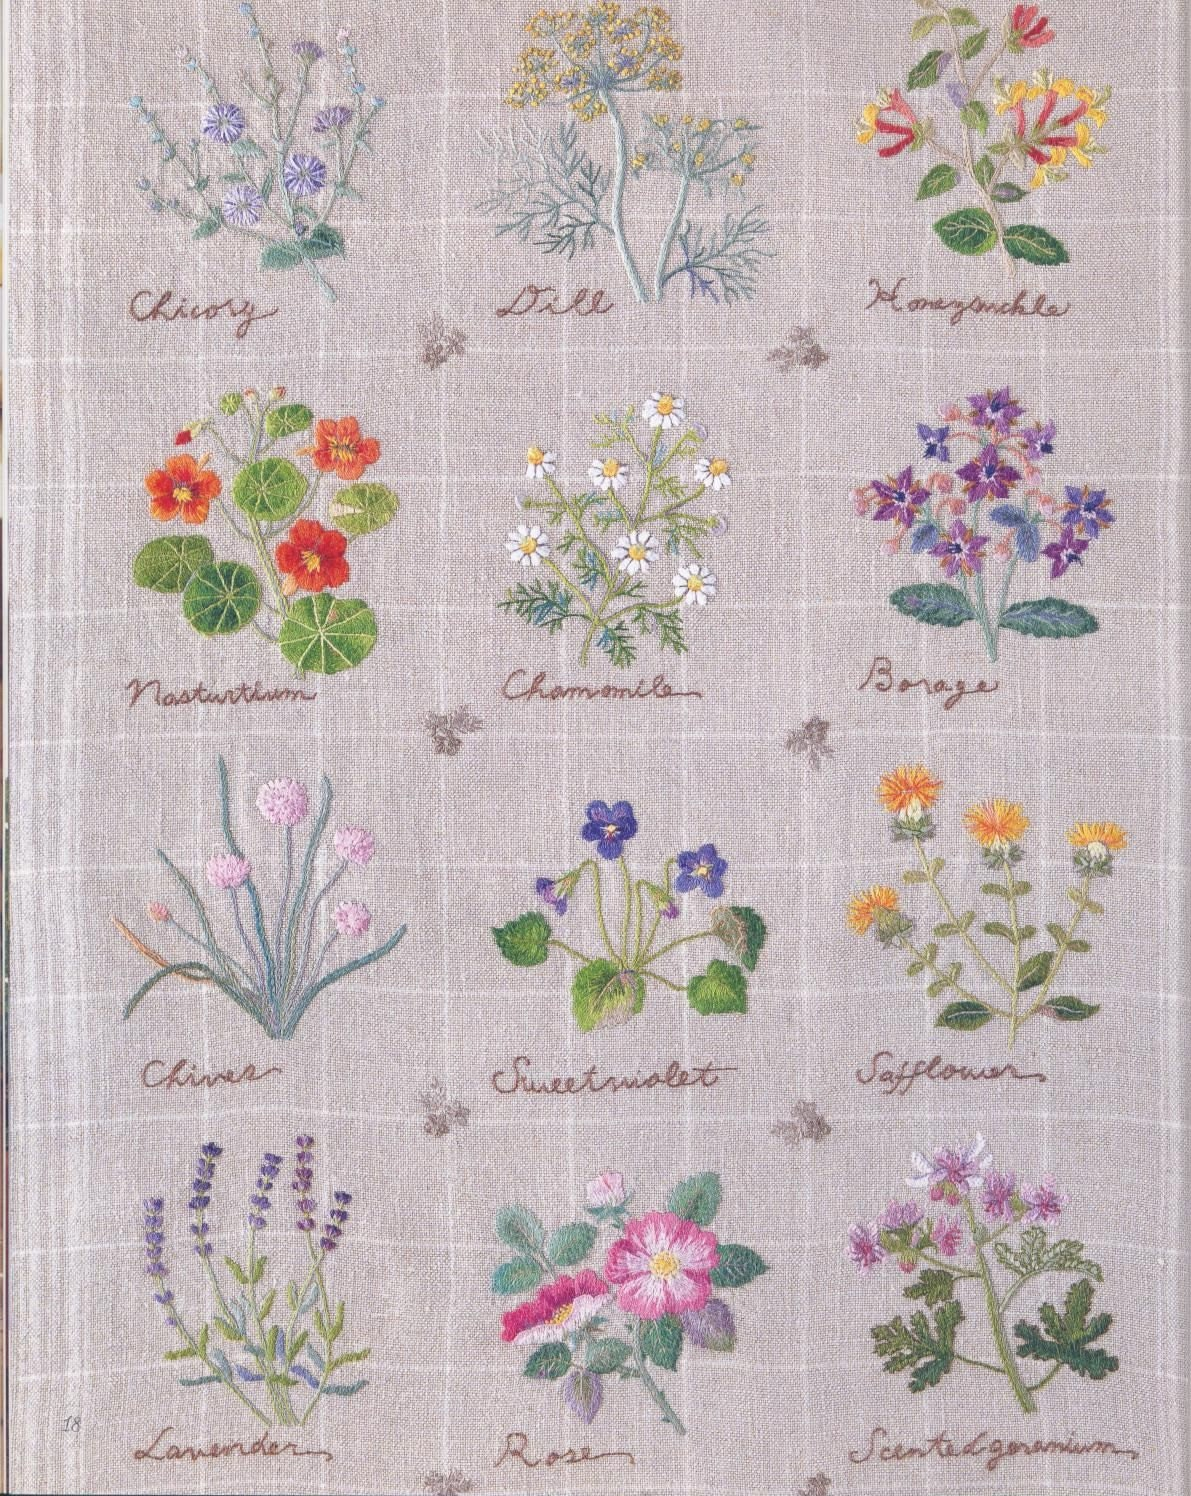 Japanese Herb Embroidery Hand stitches Flowers ebook Patterns